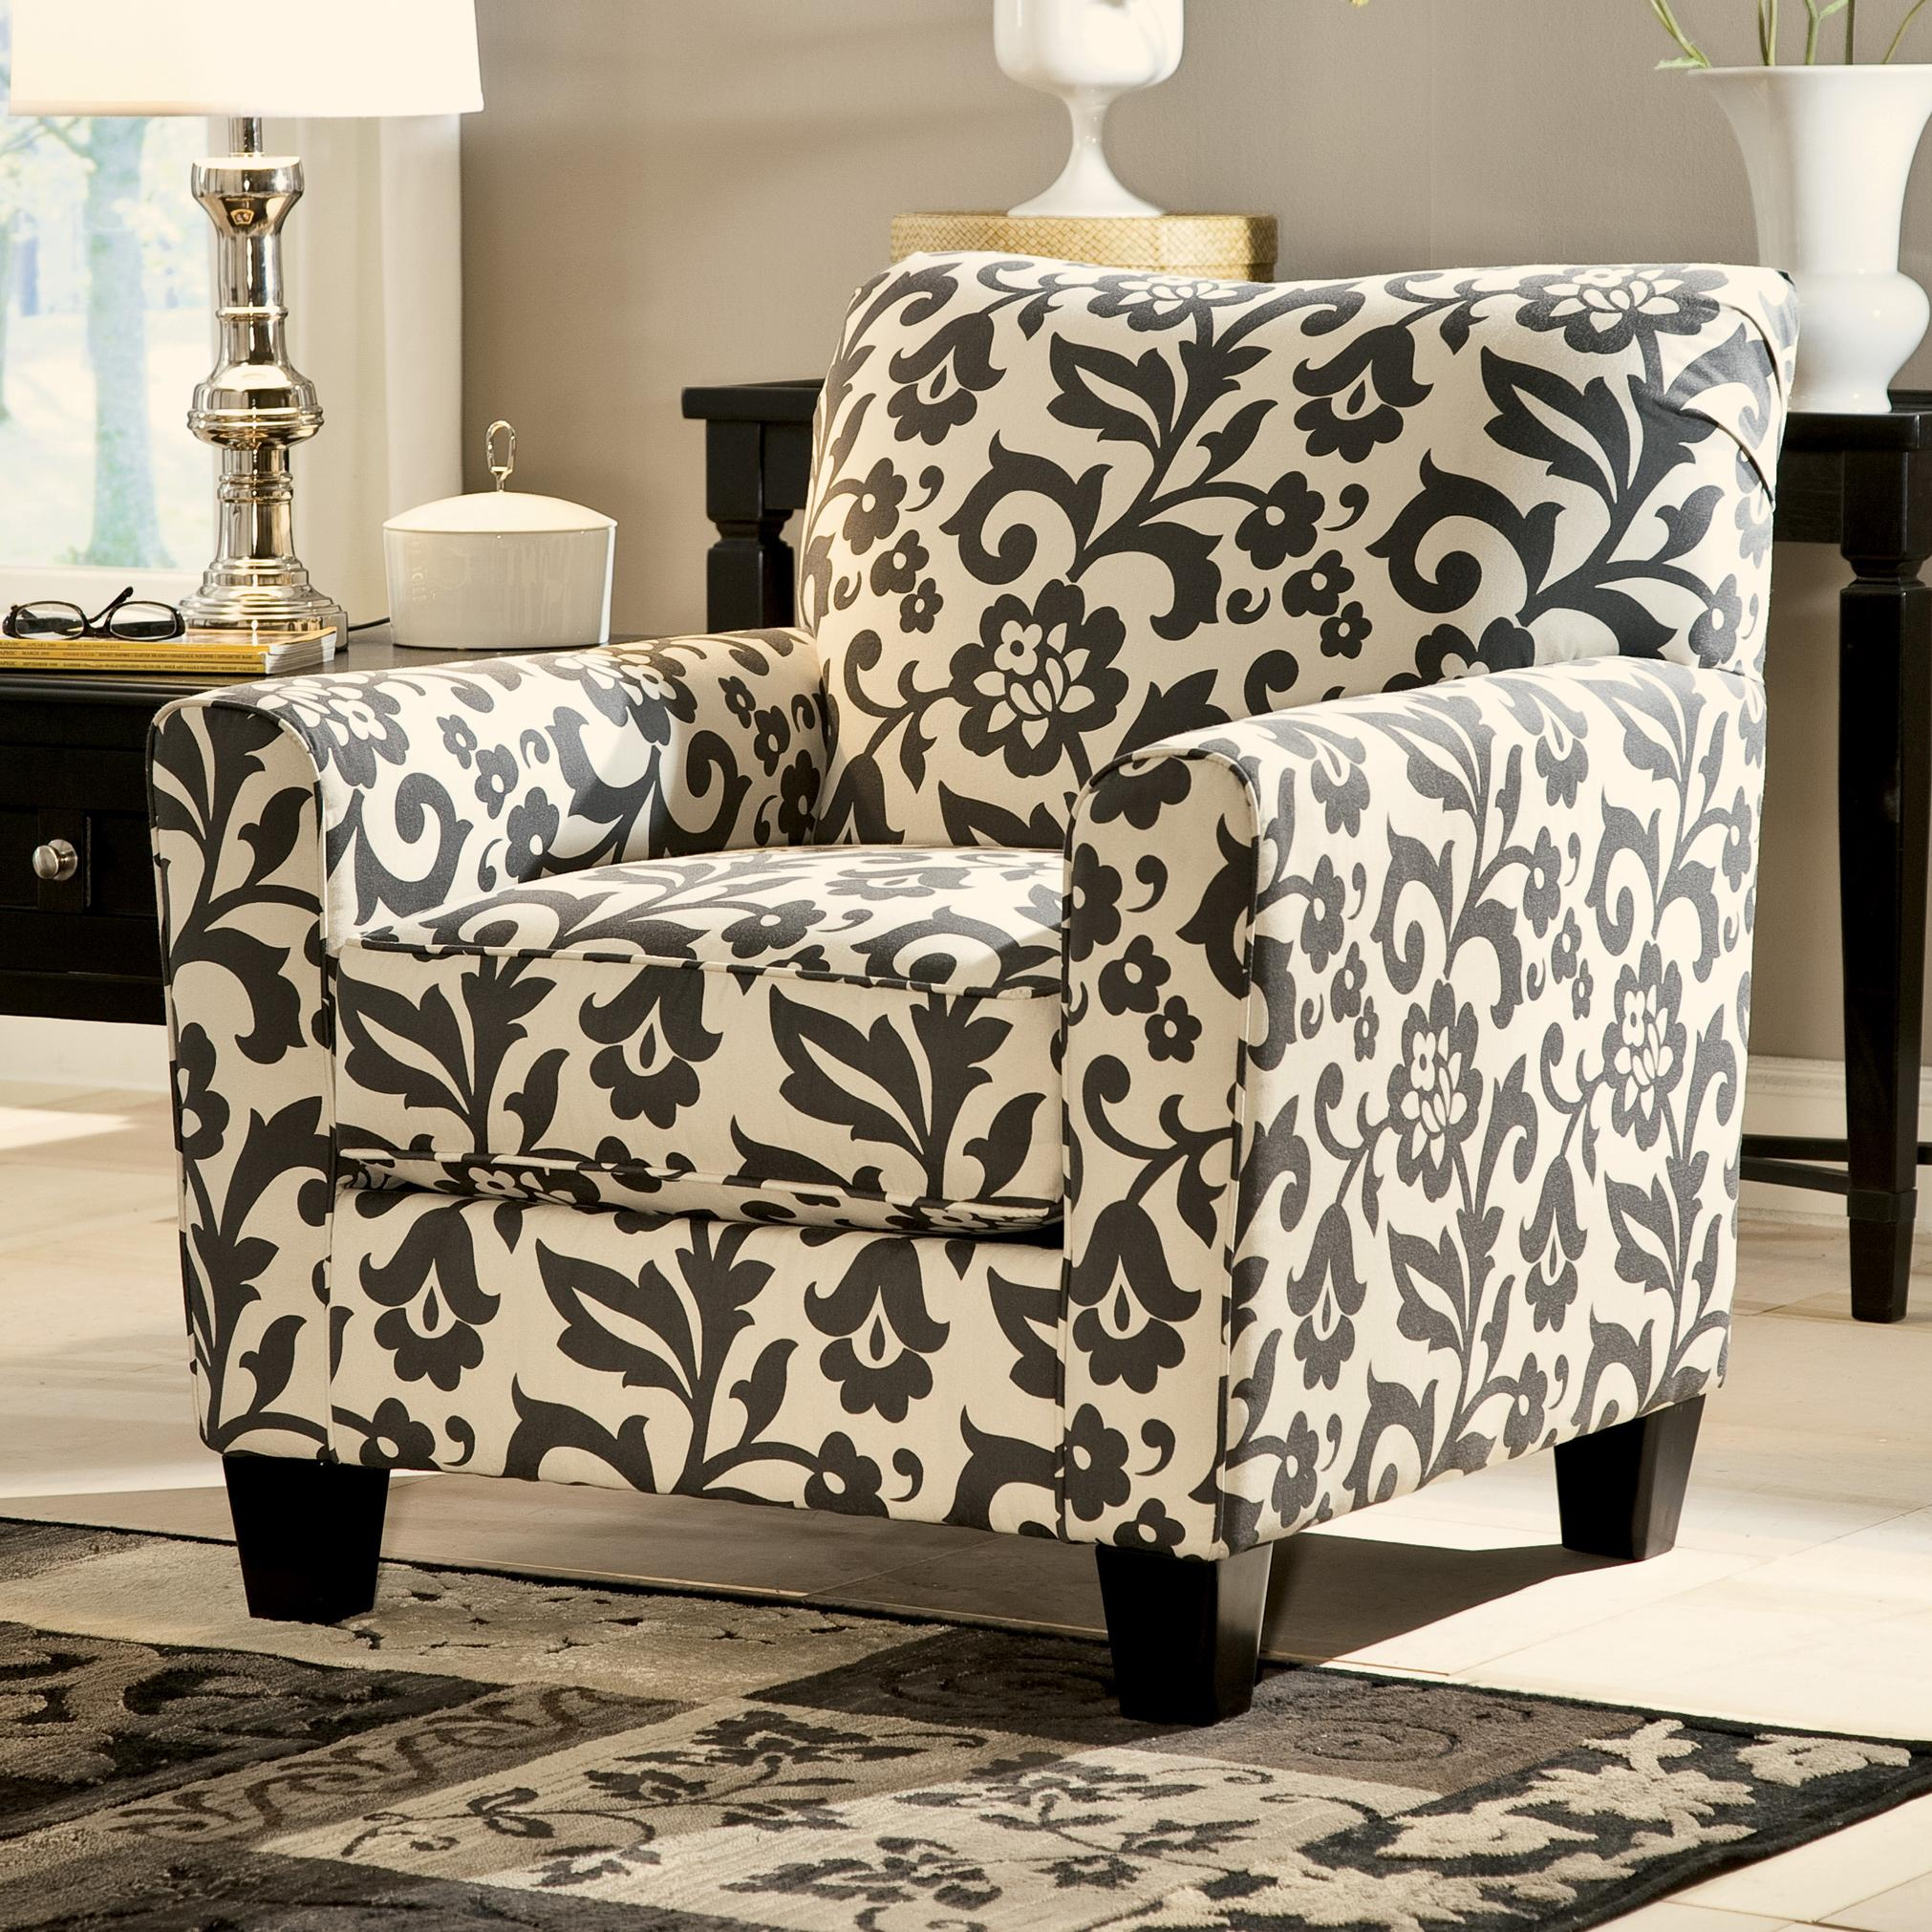 Flower Chair Accent Chair In Floral Print By Signature Design By Ashley